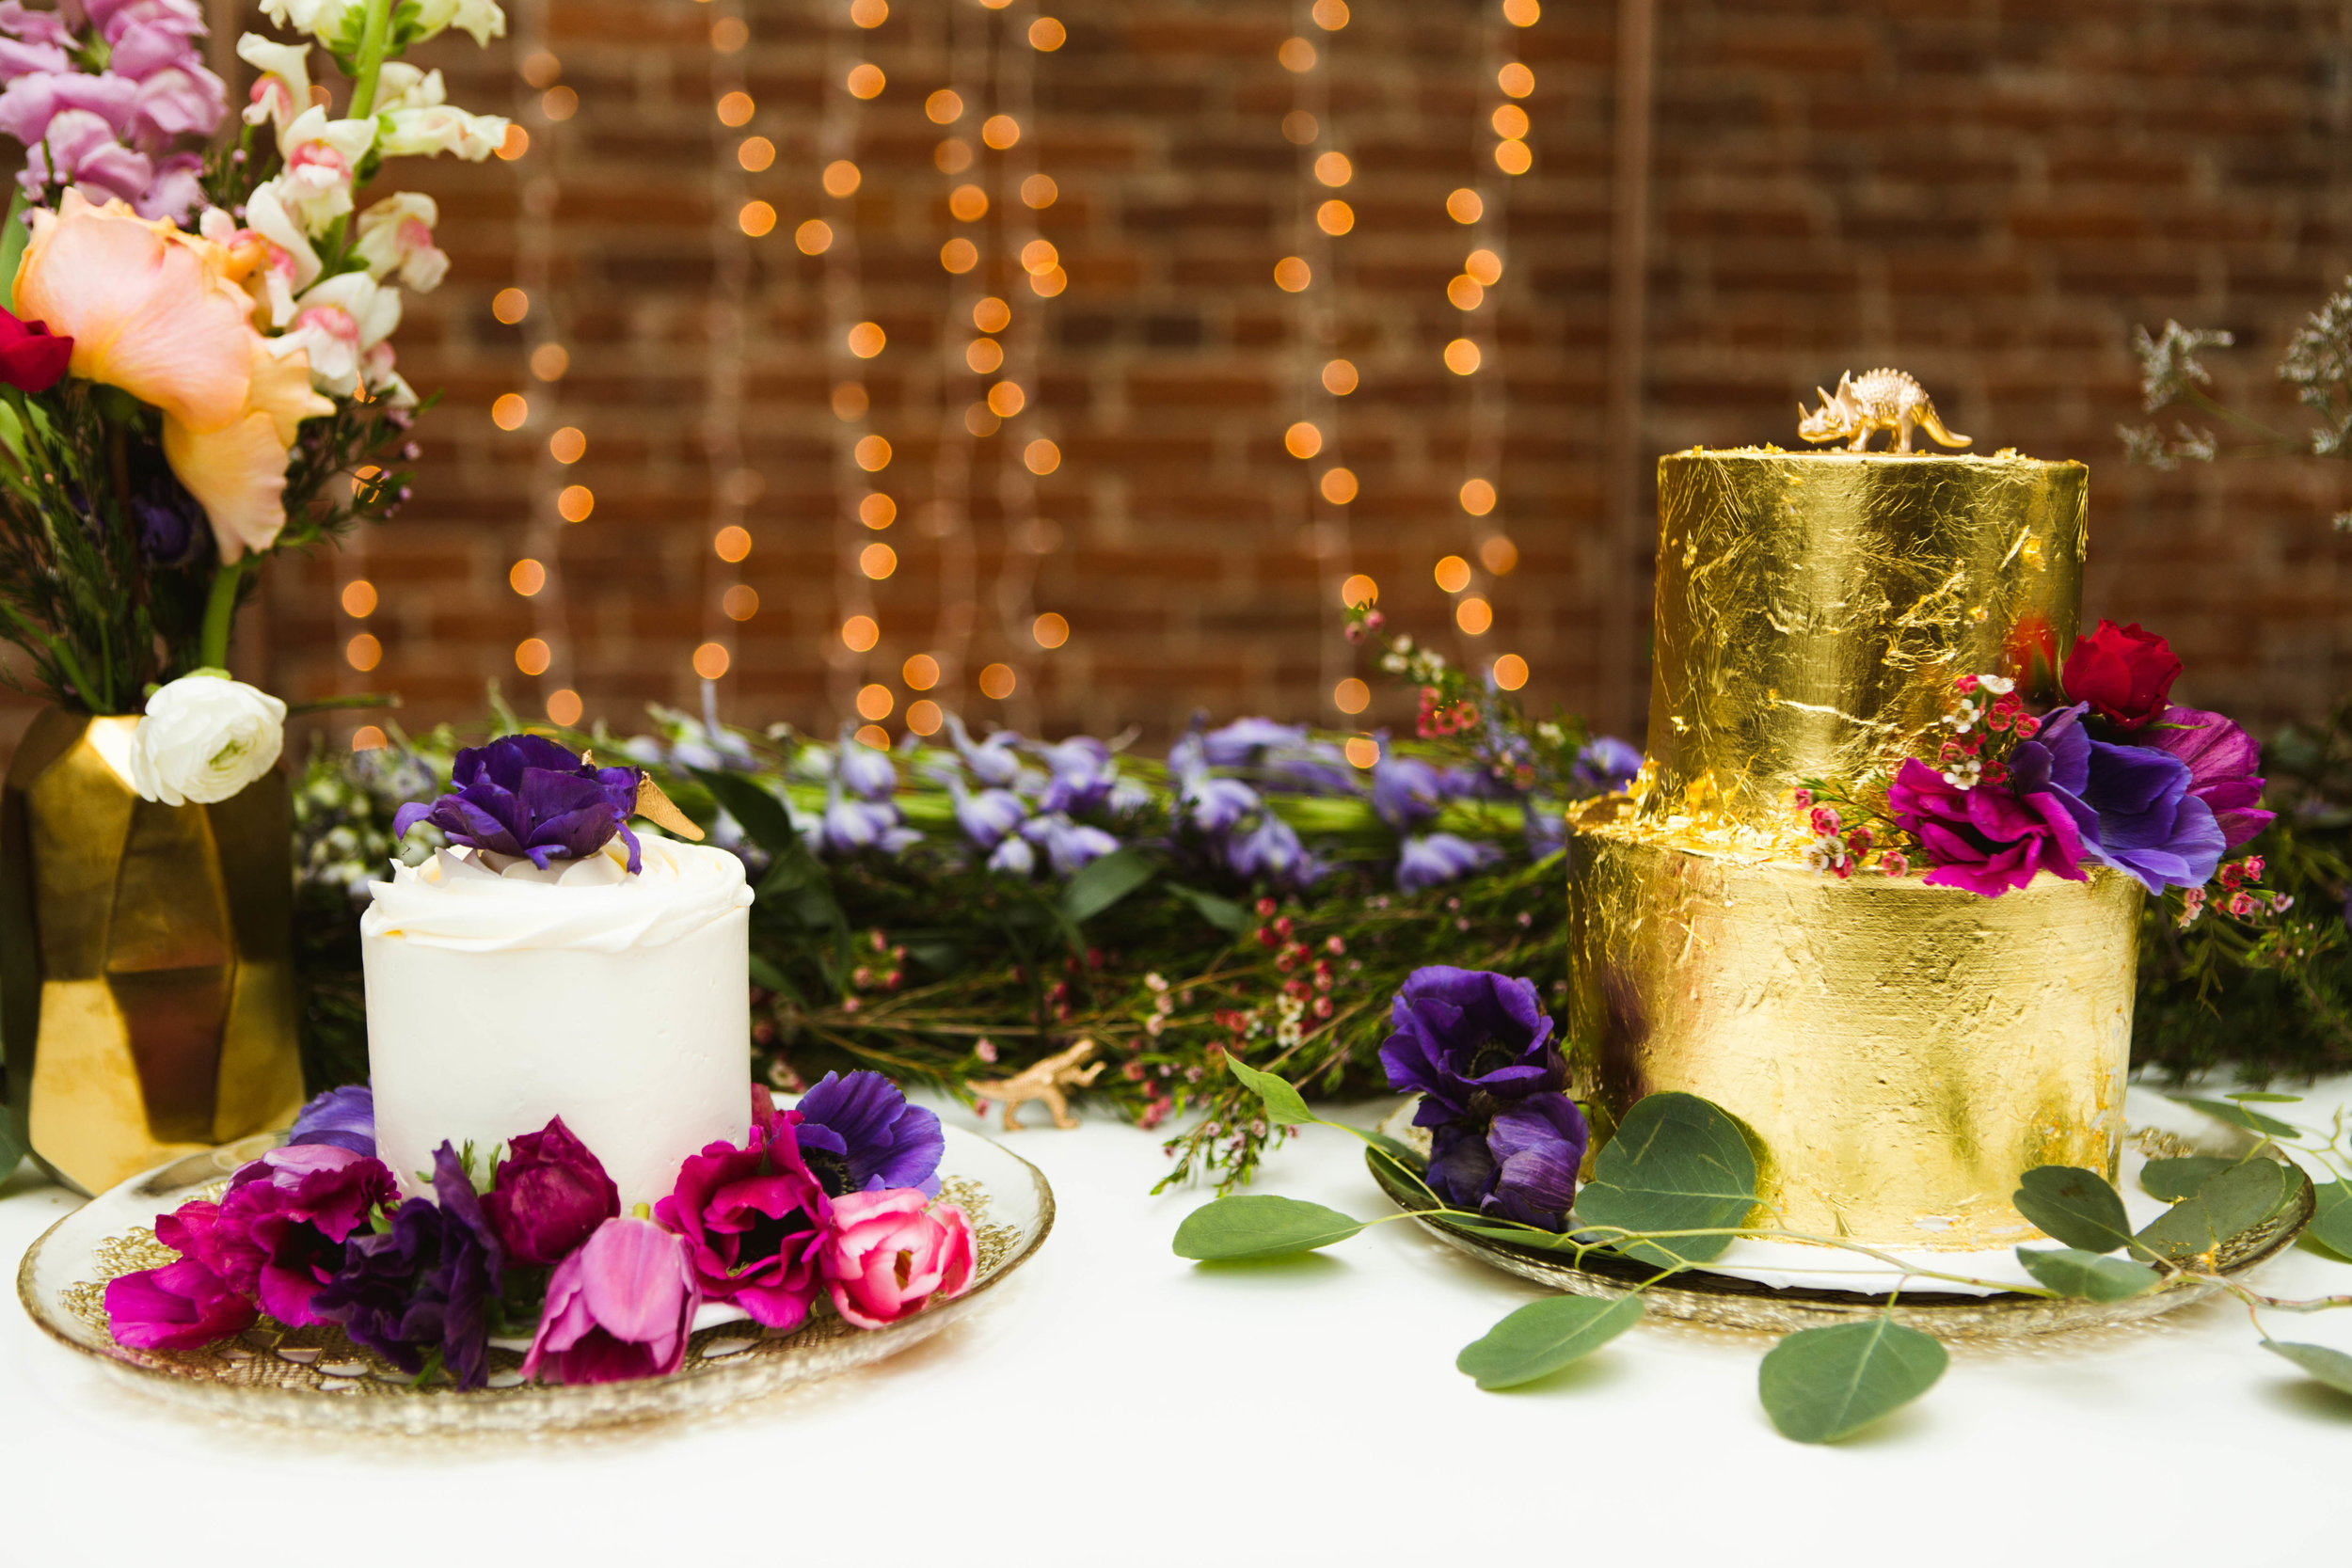 Gold foil and floral custom wedding cake design. Nicole Bakes Cakes is a Southern California boutique wedding cake designer specializing in artistic, unique, out of the box wedding cakes and desserts throughout Los Angeles, South Bay, and Long Beach.